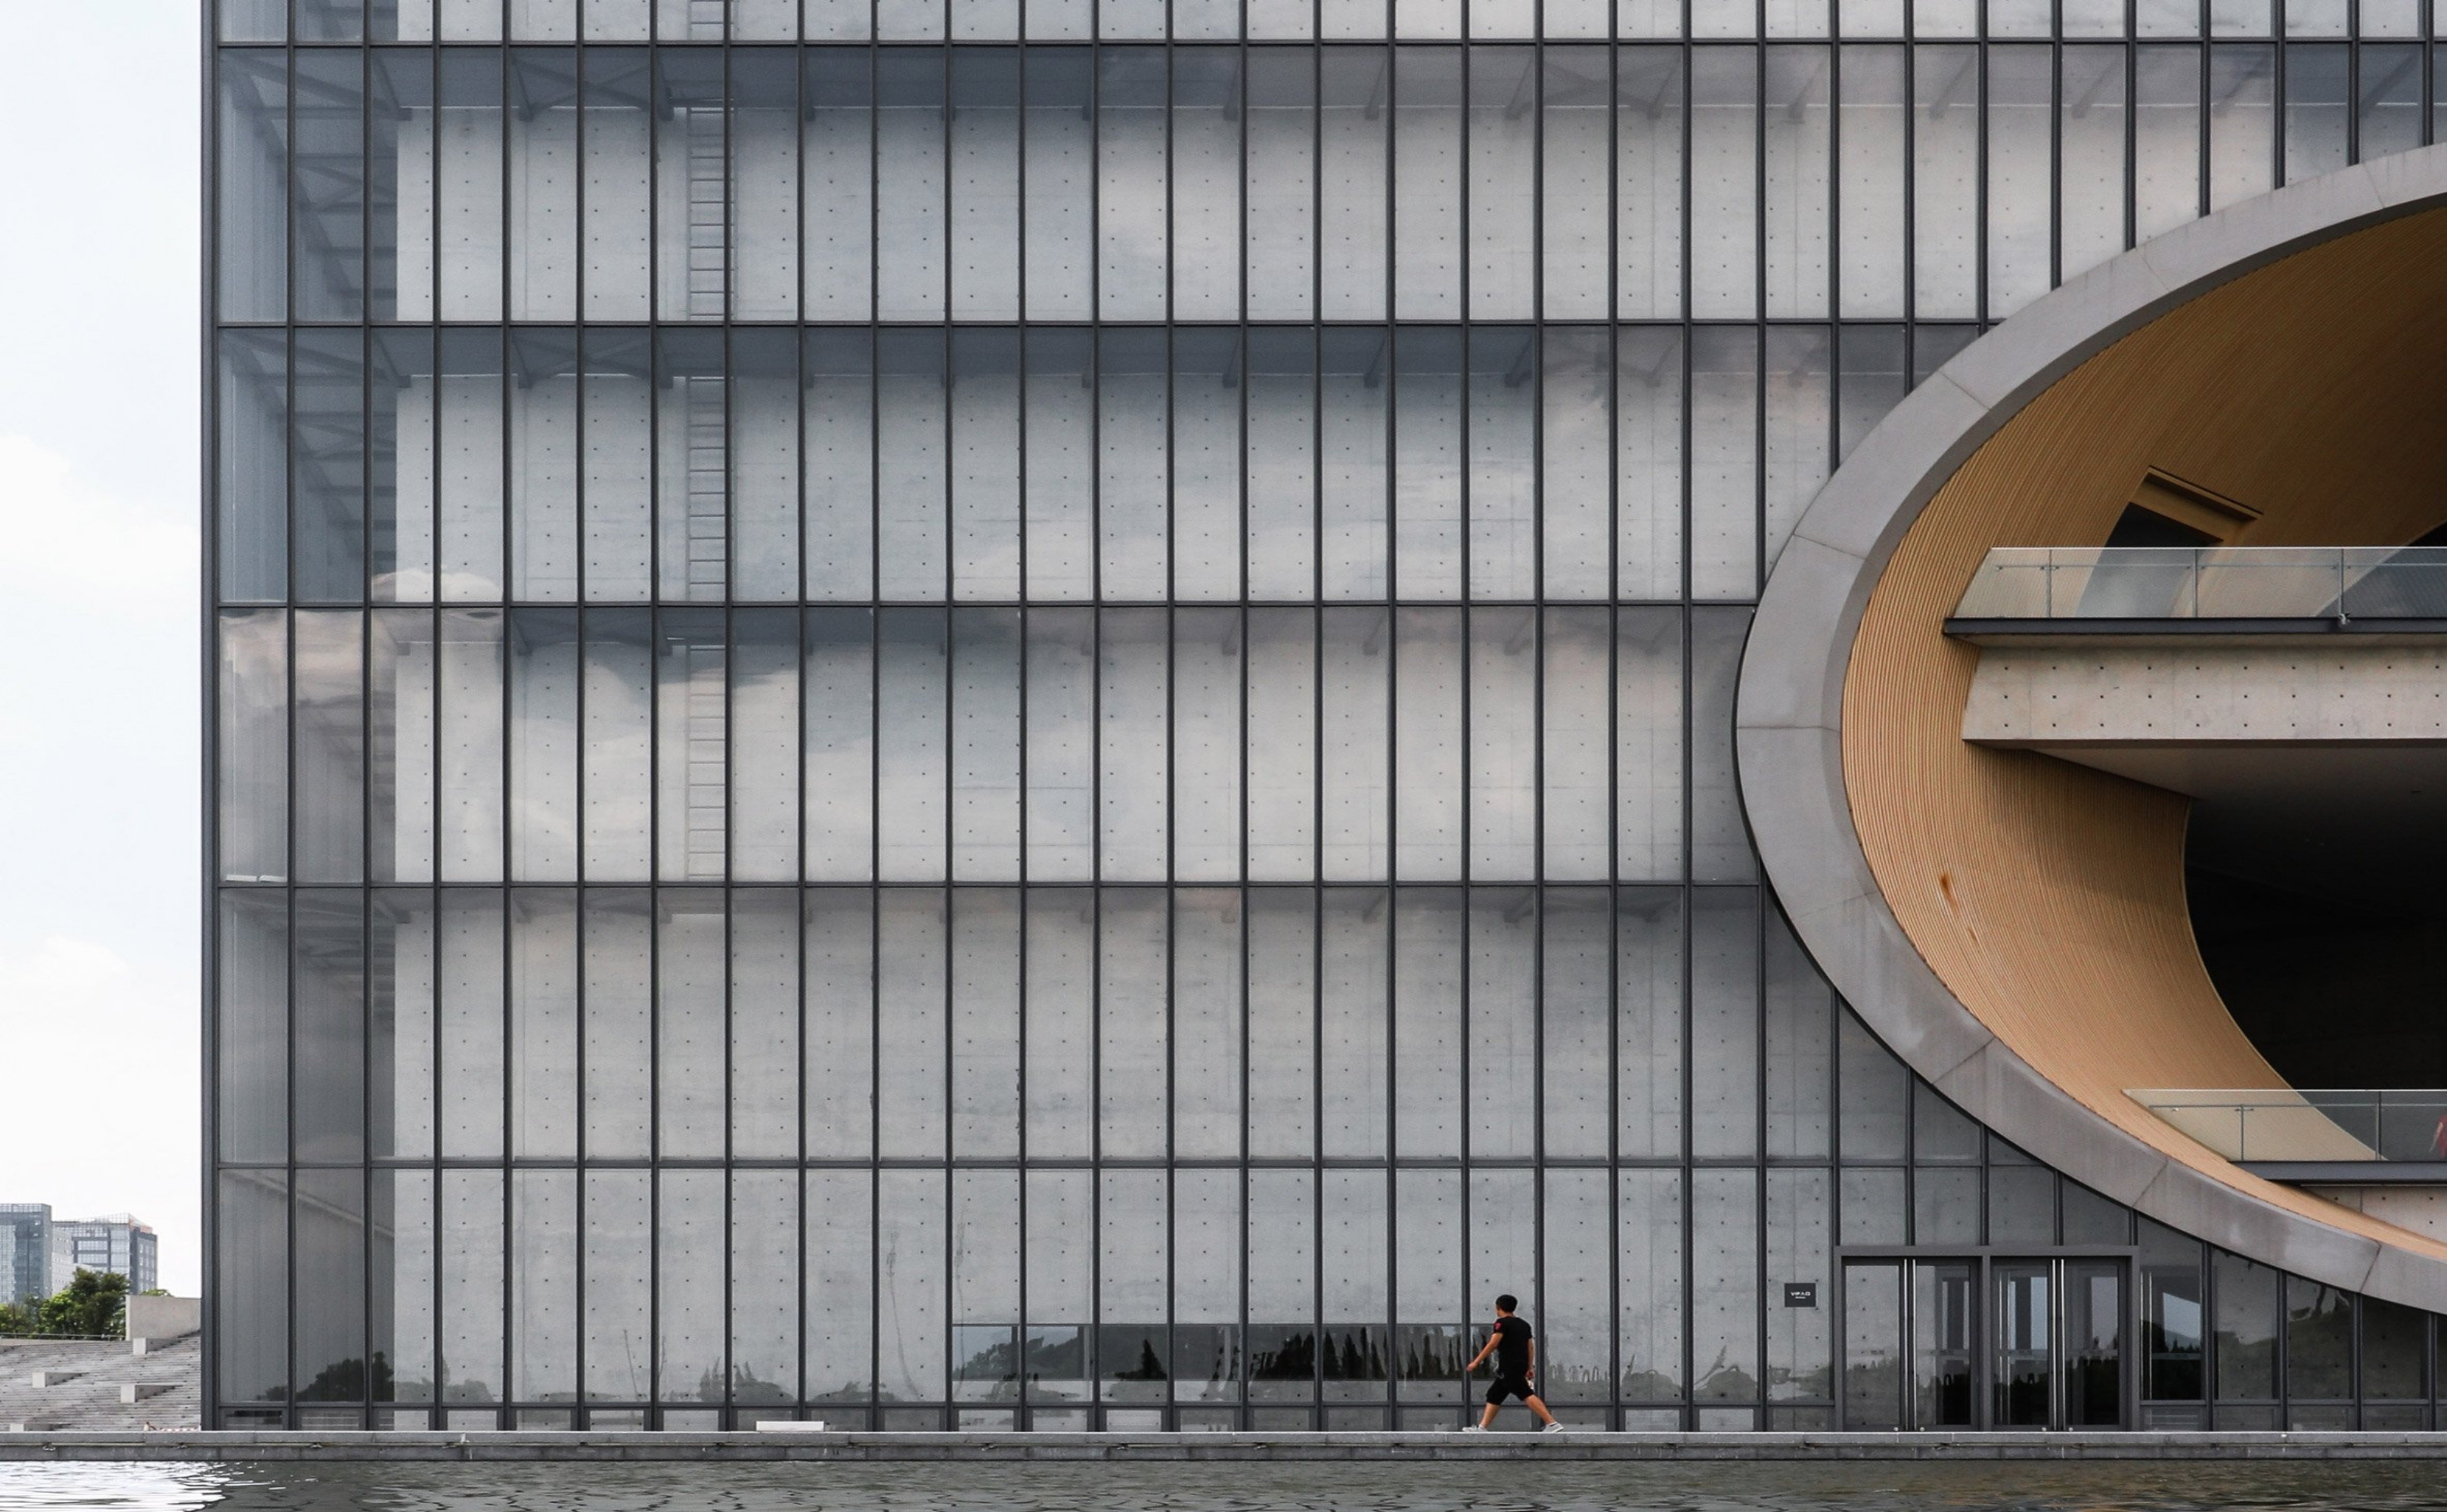 xtadao-ando-poly-grand-theatre-photographed-yueqi-li-photography-architecture-shanghai_dezeen_2364_col_23